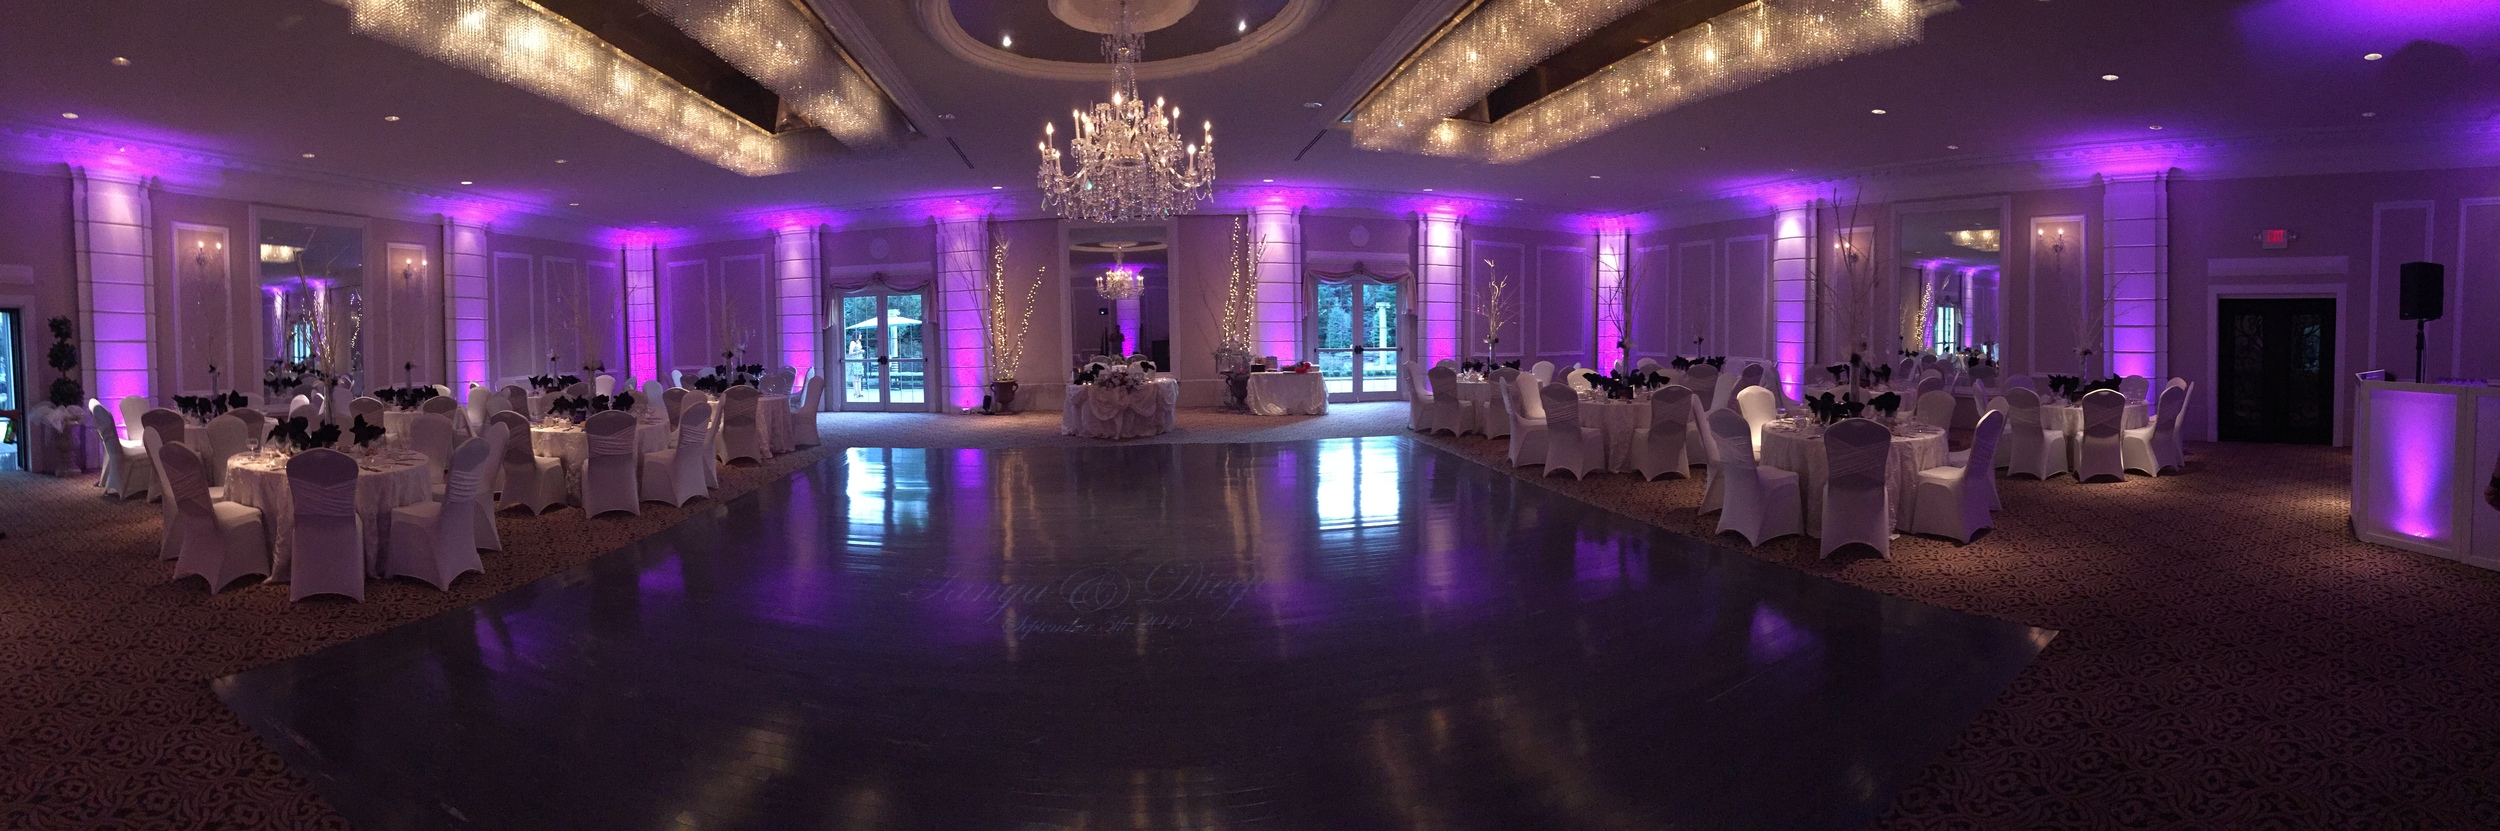 VENUES Razberrys Panaramic Uplighting Purple.JPG